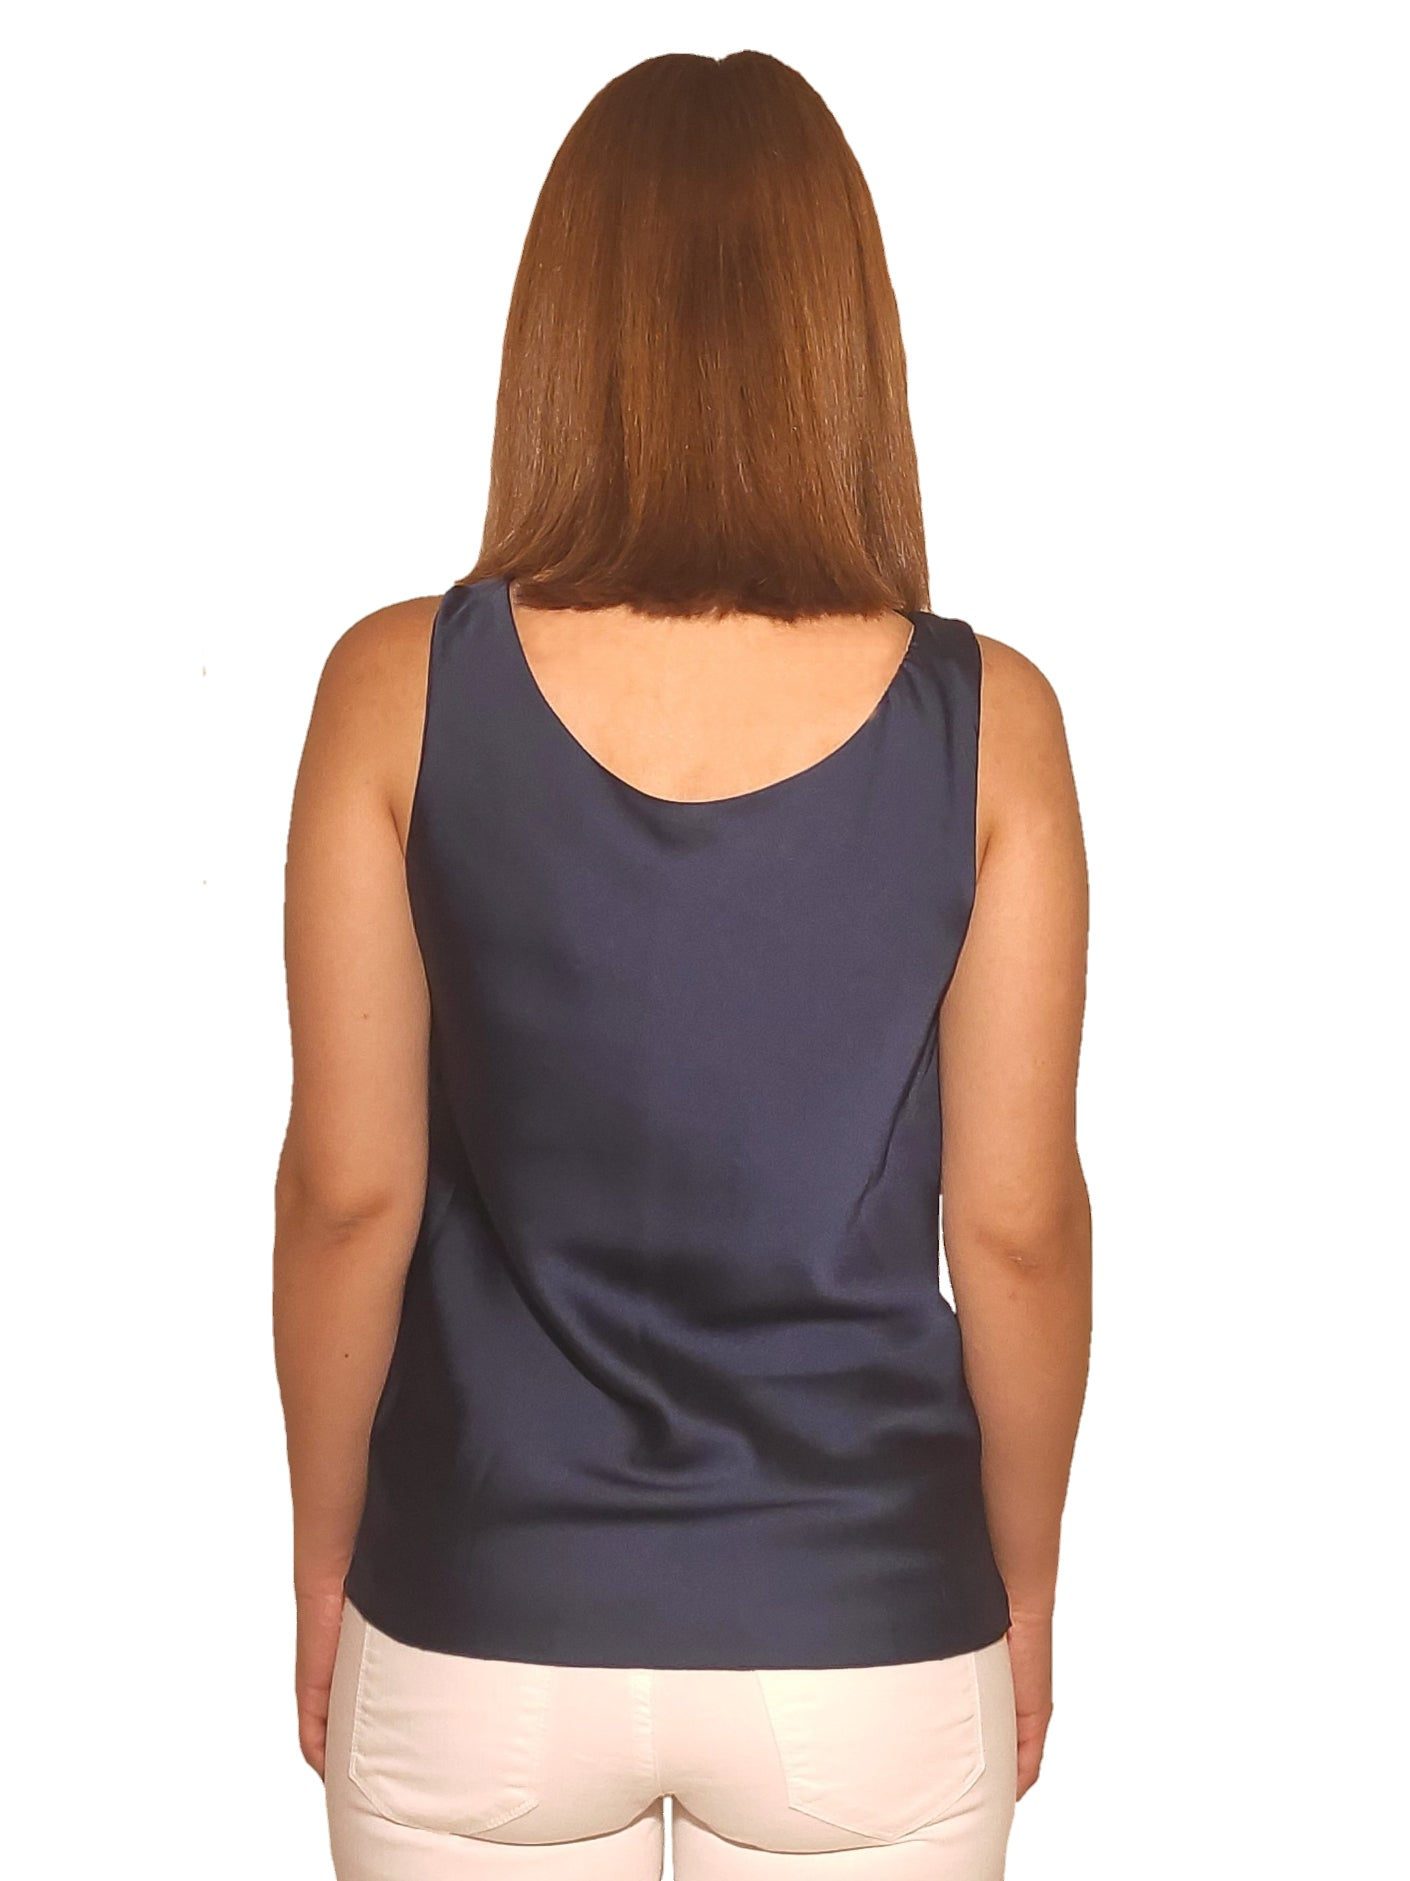 brunet-girl-wears-a-sleeveless-blue-blouse-with-satin-texture-back